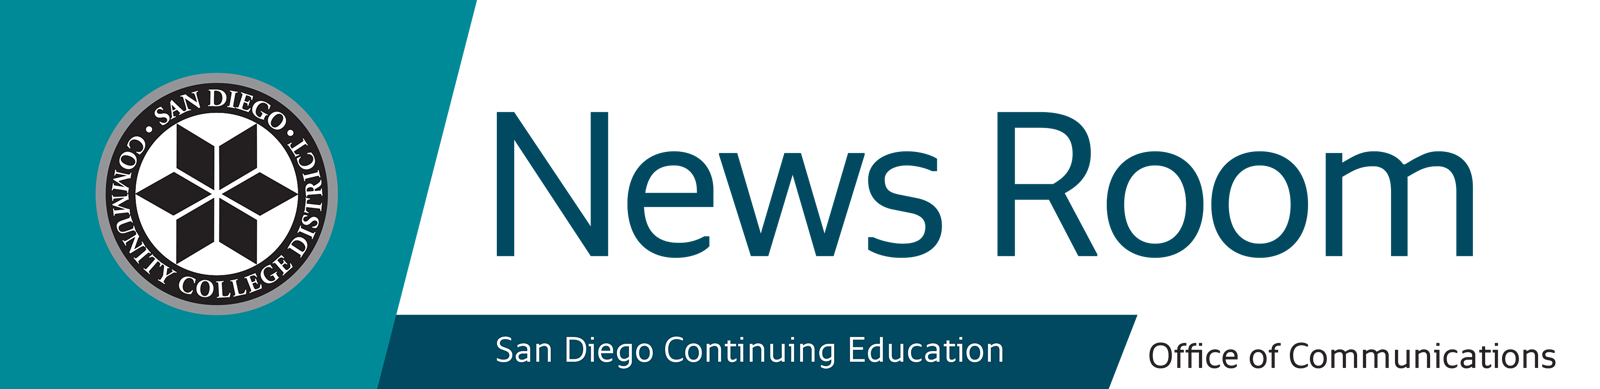 News Center - San Diego Continuing Education